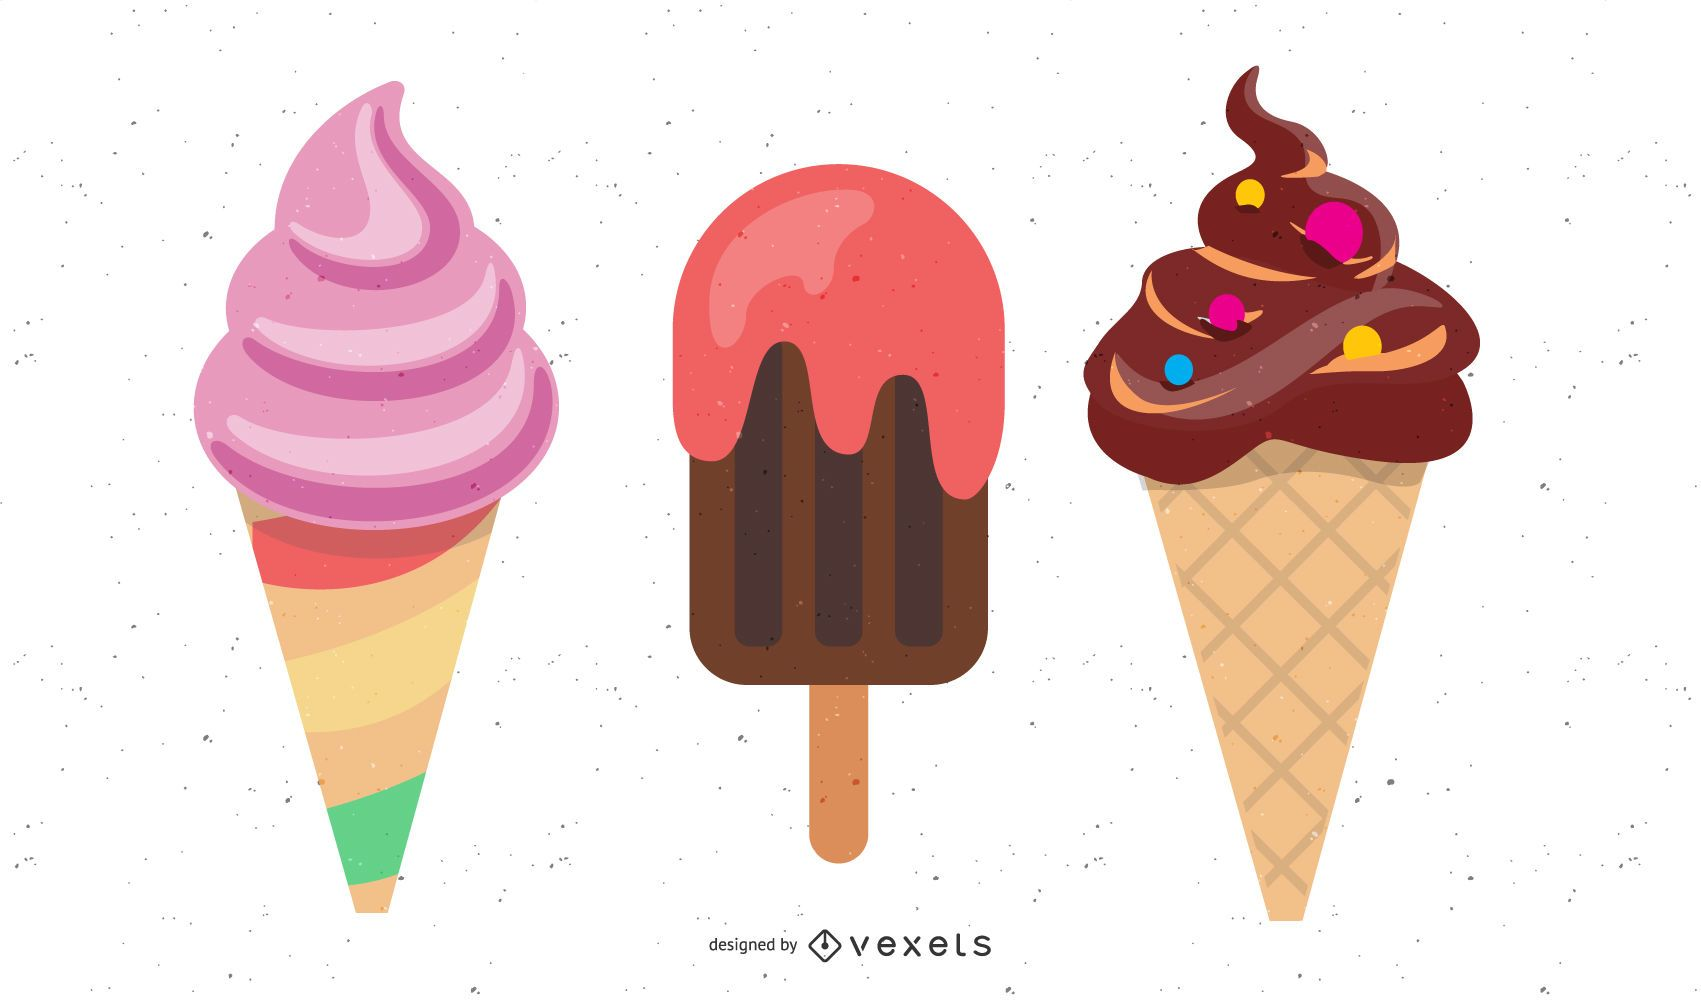 Ice cream is good for your health!